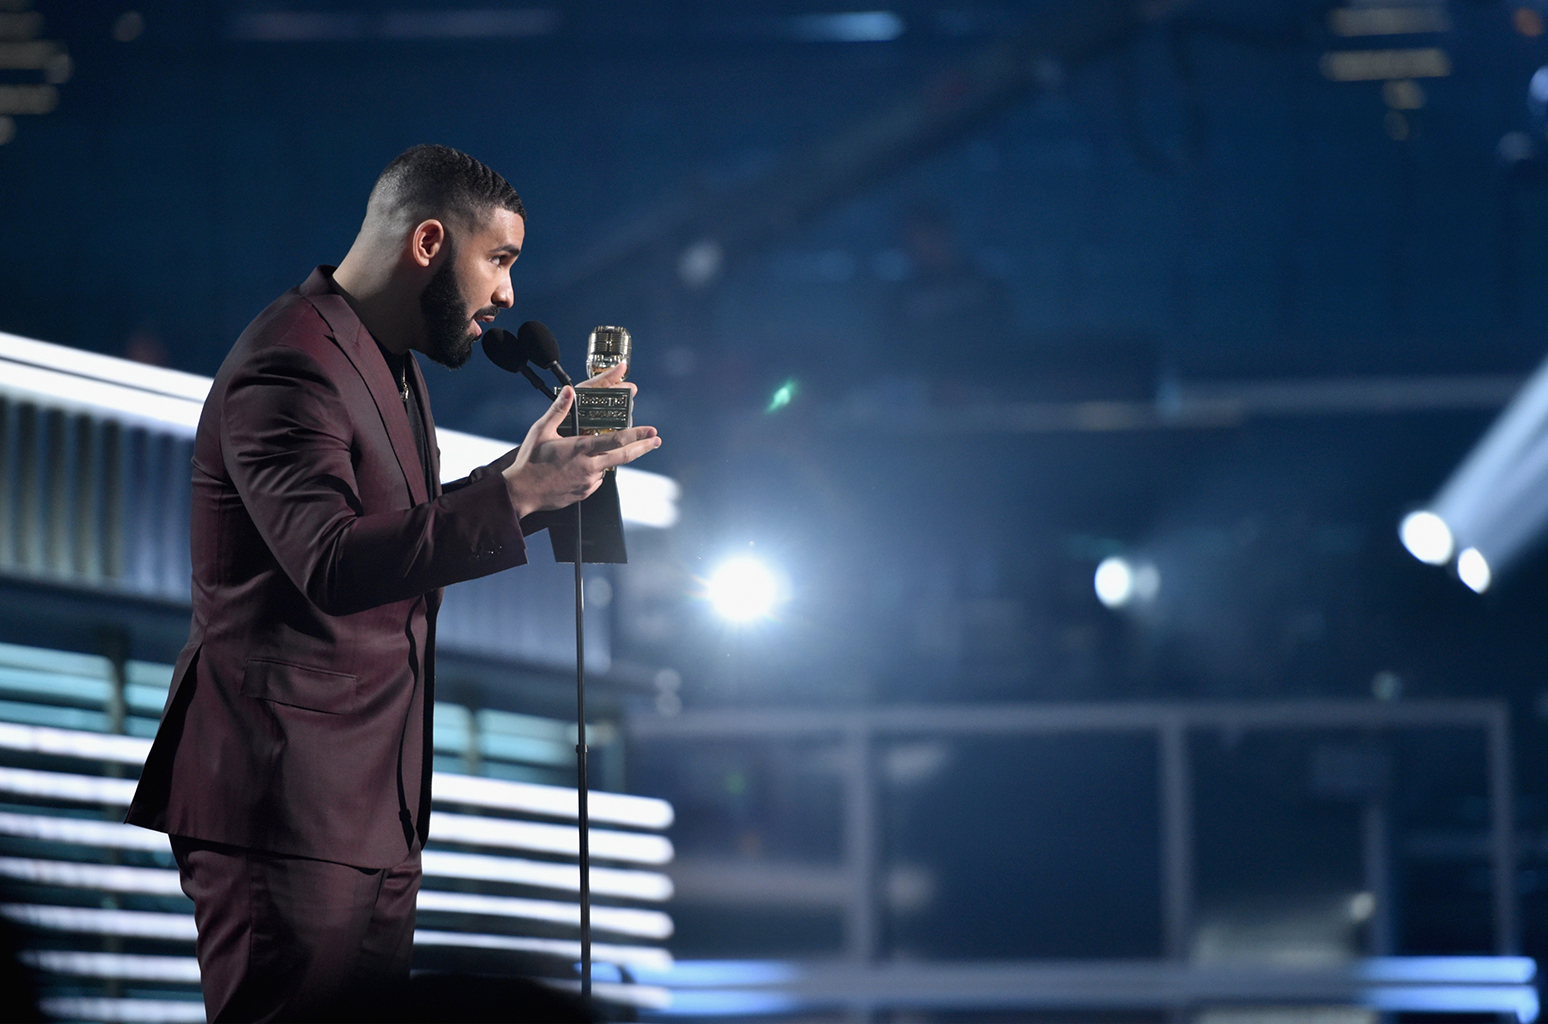 BILLBOARD MUSIC AWARDS 2019: LA LISTA COMPLETA DEI VINCITORI